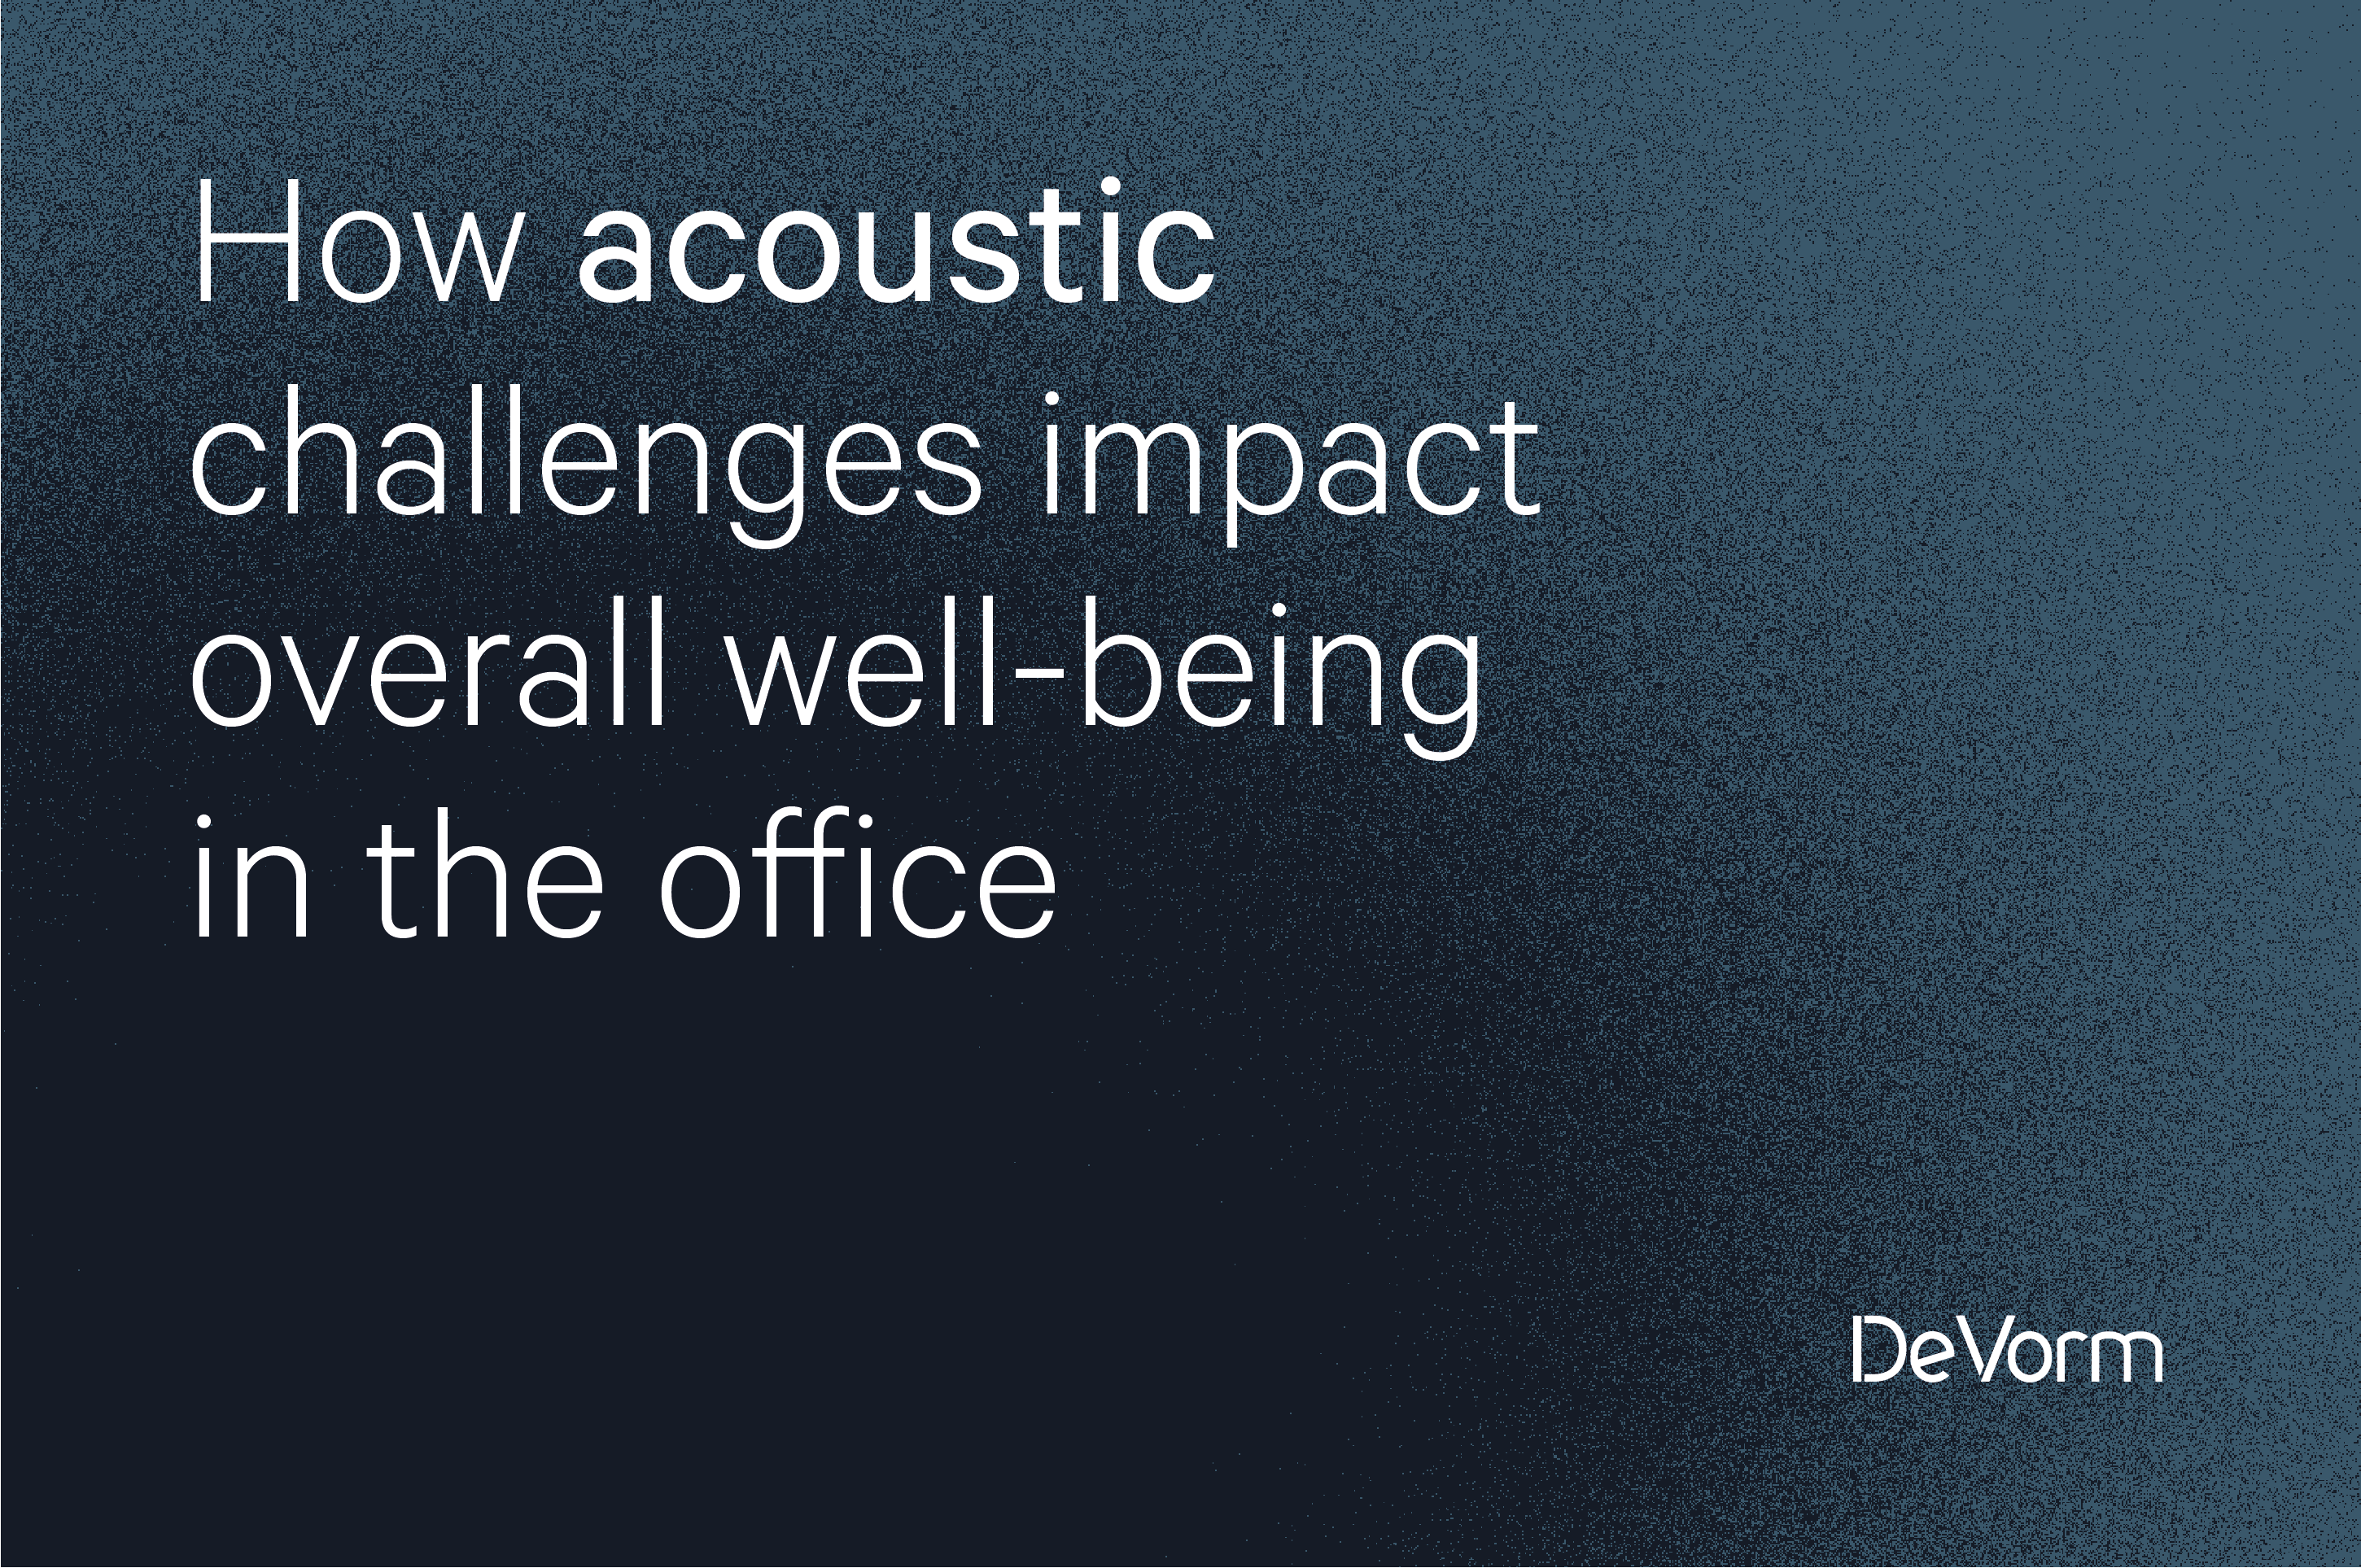 How Acoustic Challenges Impact Overall Well-being in the Office